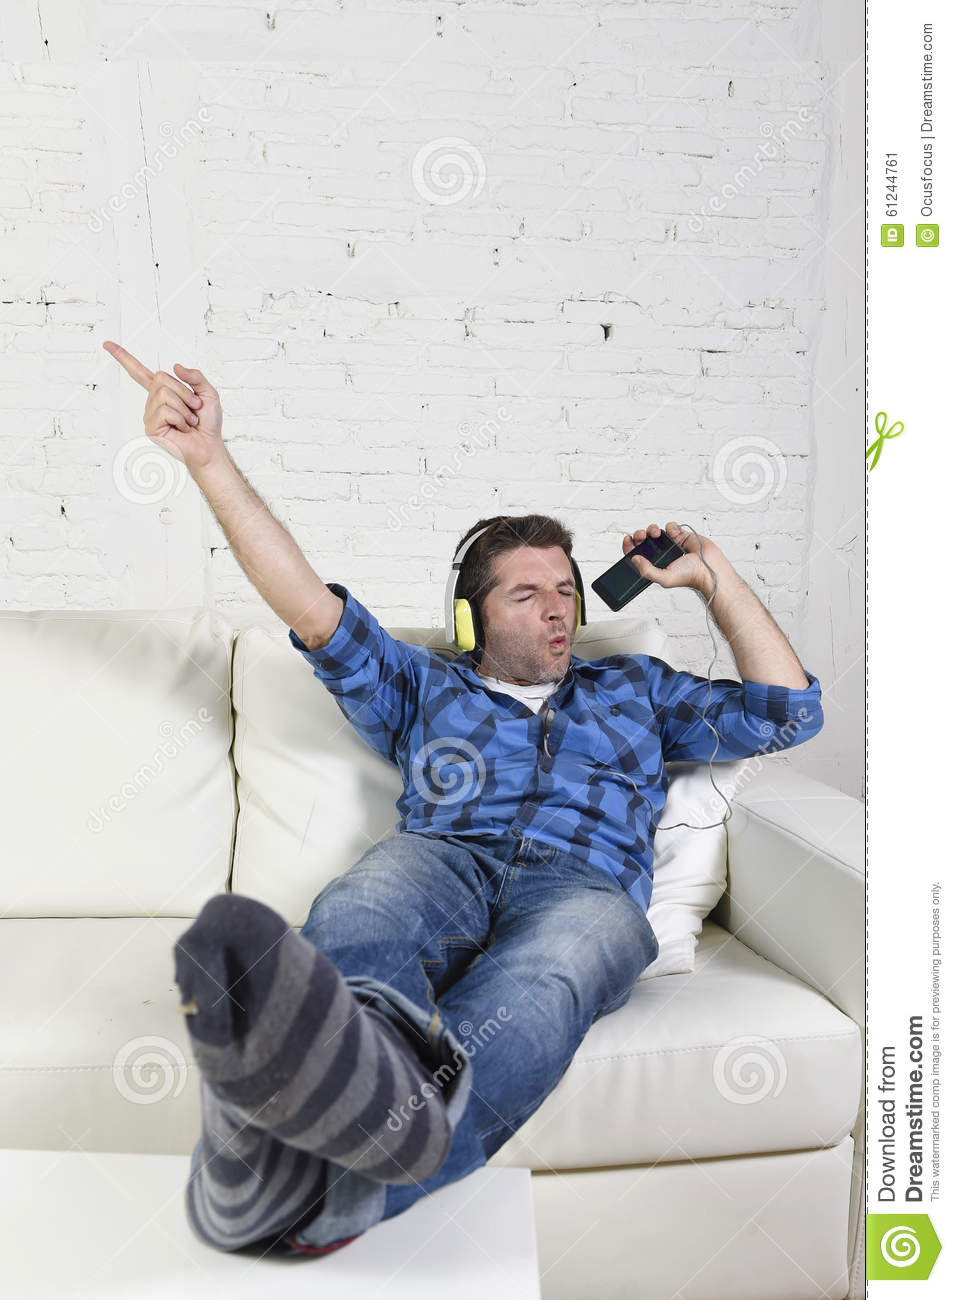 Download happy crazy man on couch listening to music holding mobile phone as microphone stock image